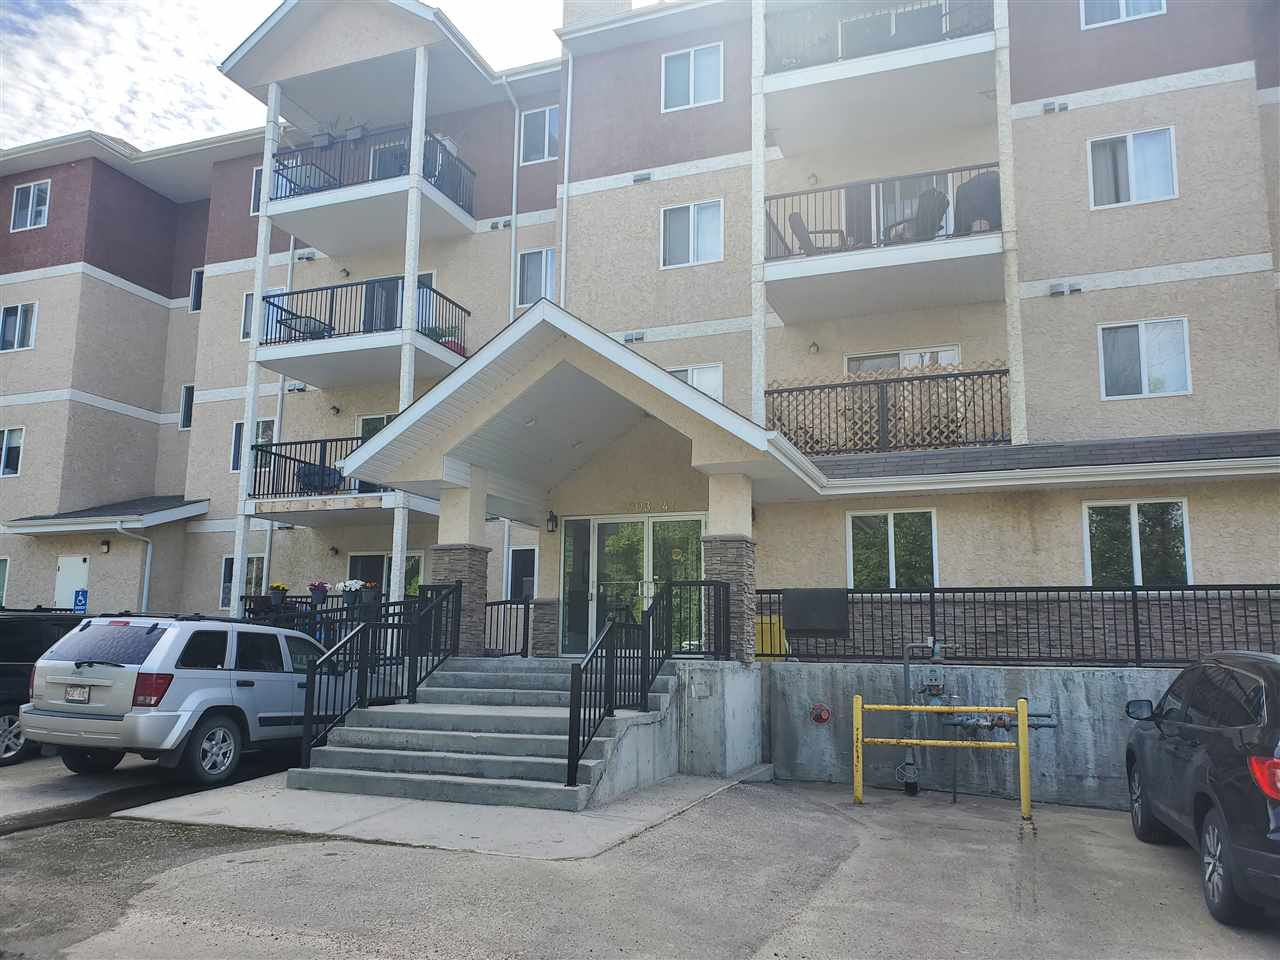 Main Photo: 101 4903 47 Avenue: Stony Plain Condo for sale : MLS®# E4202473